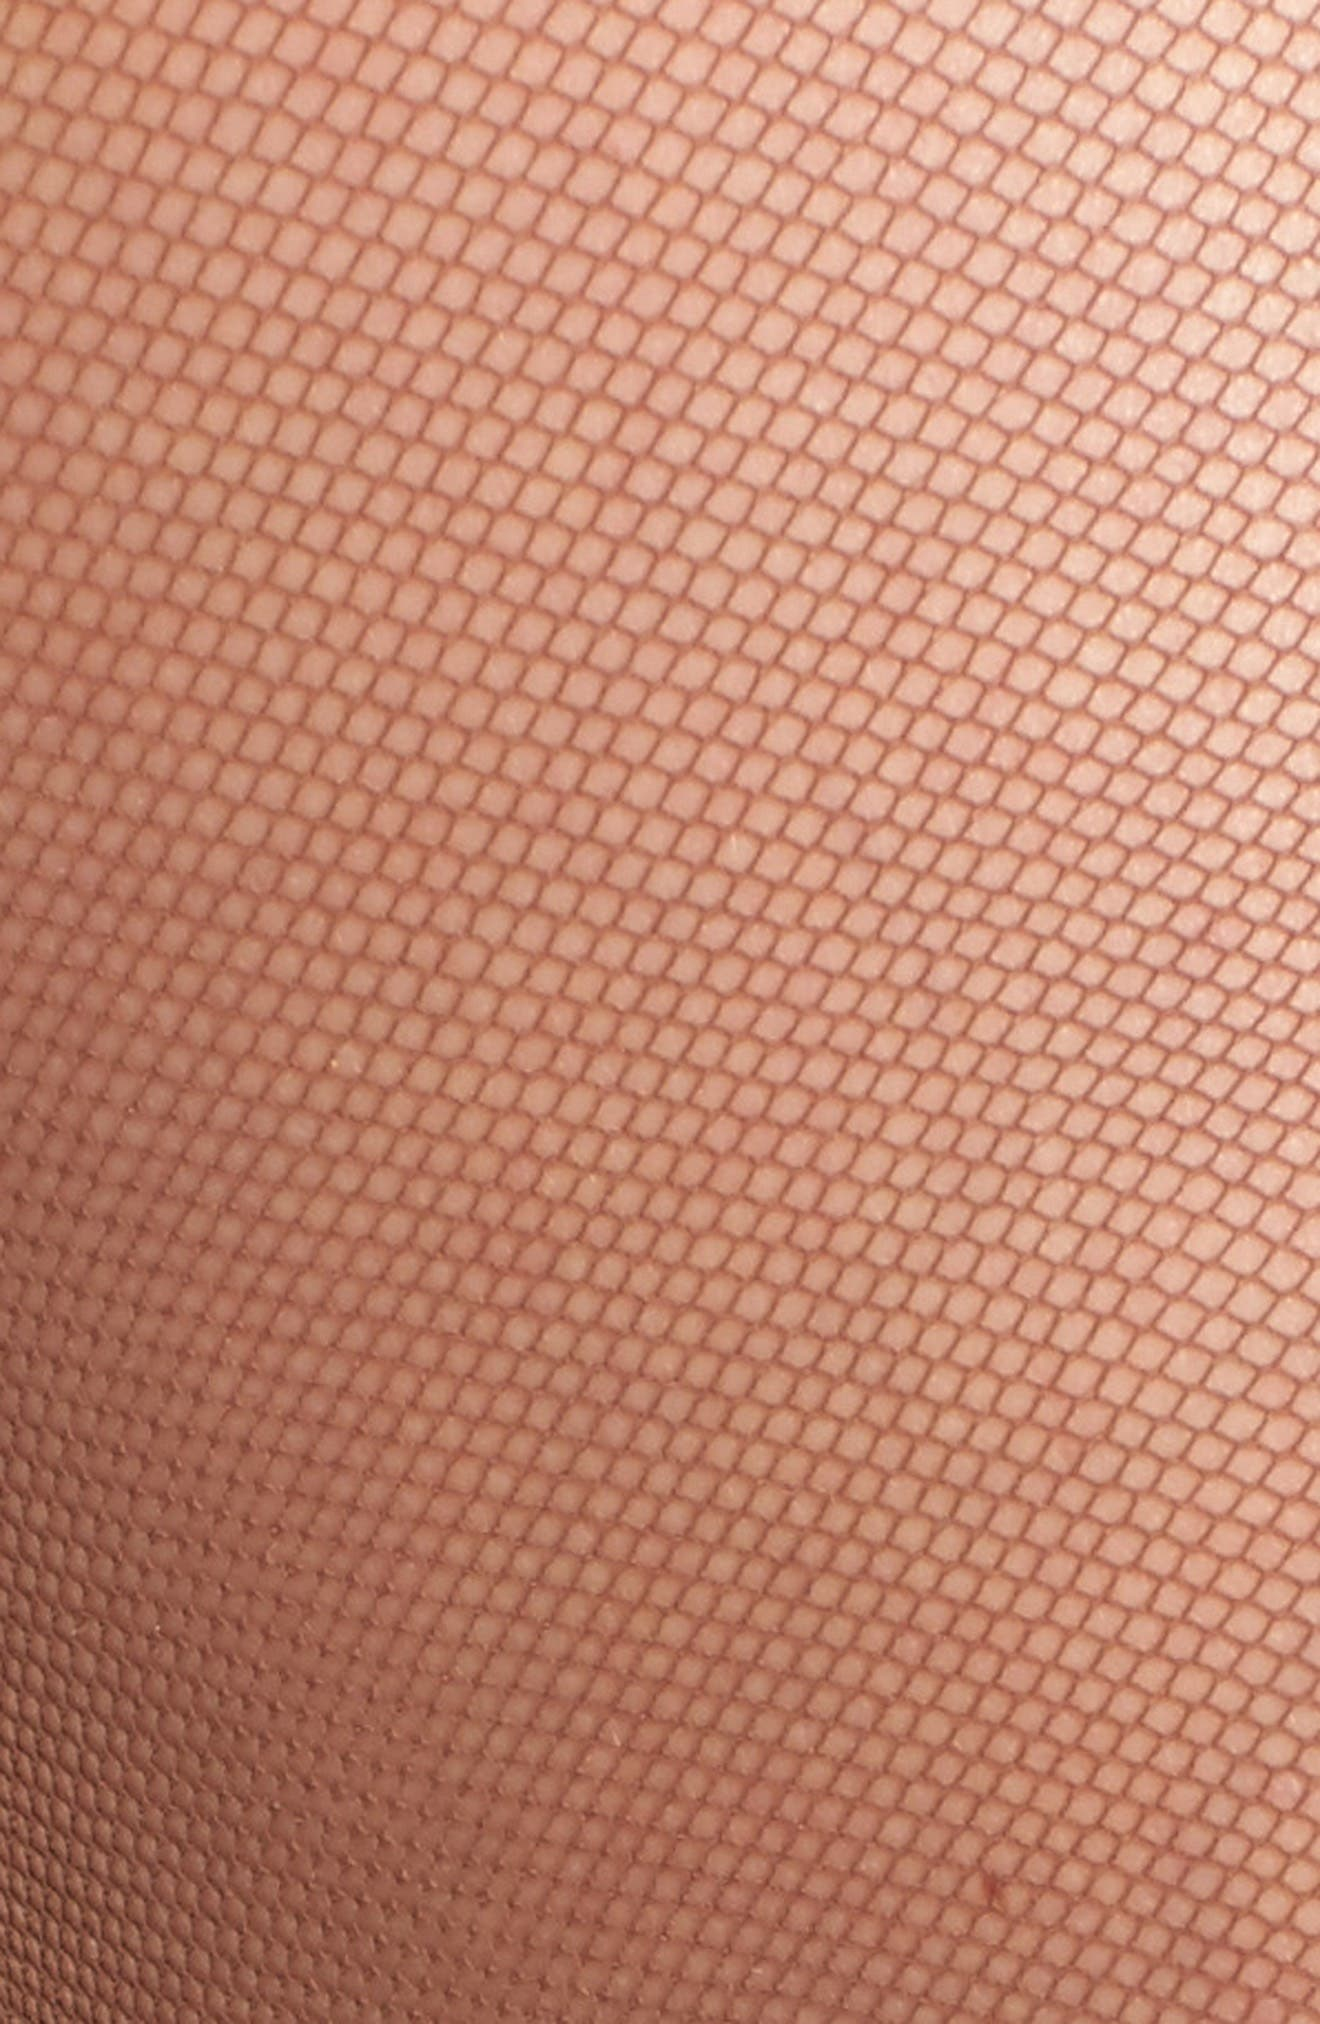 Micro Fishnet Tights,                             Alternate thumbnail 5, color,